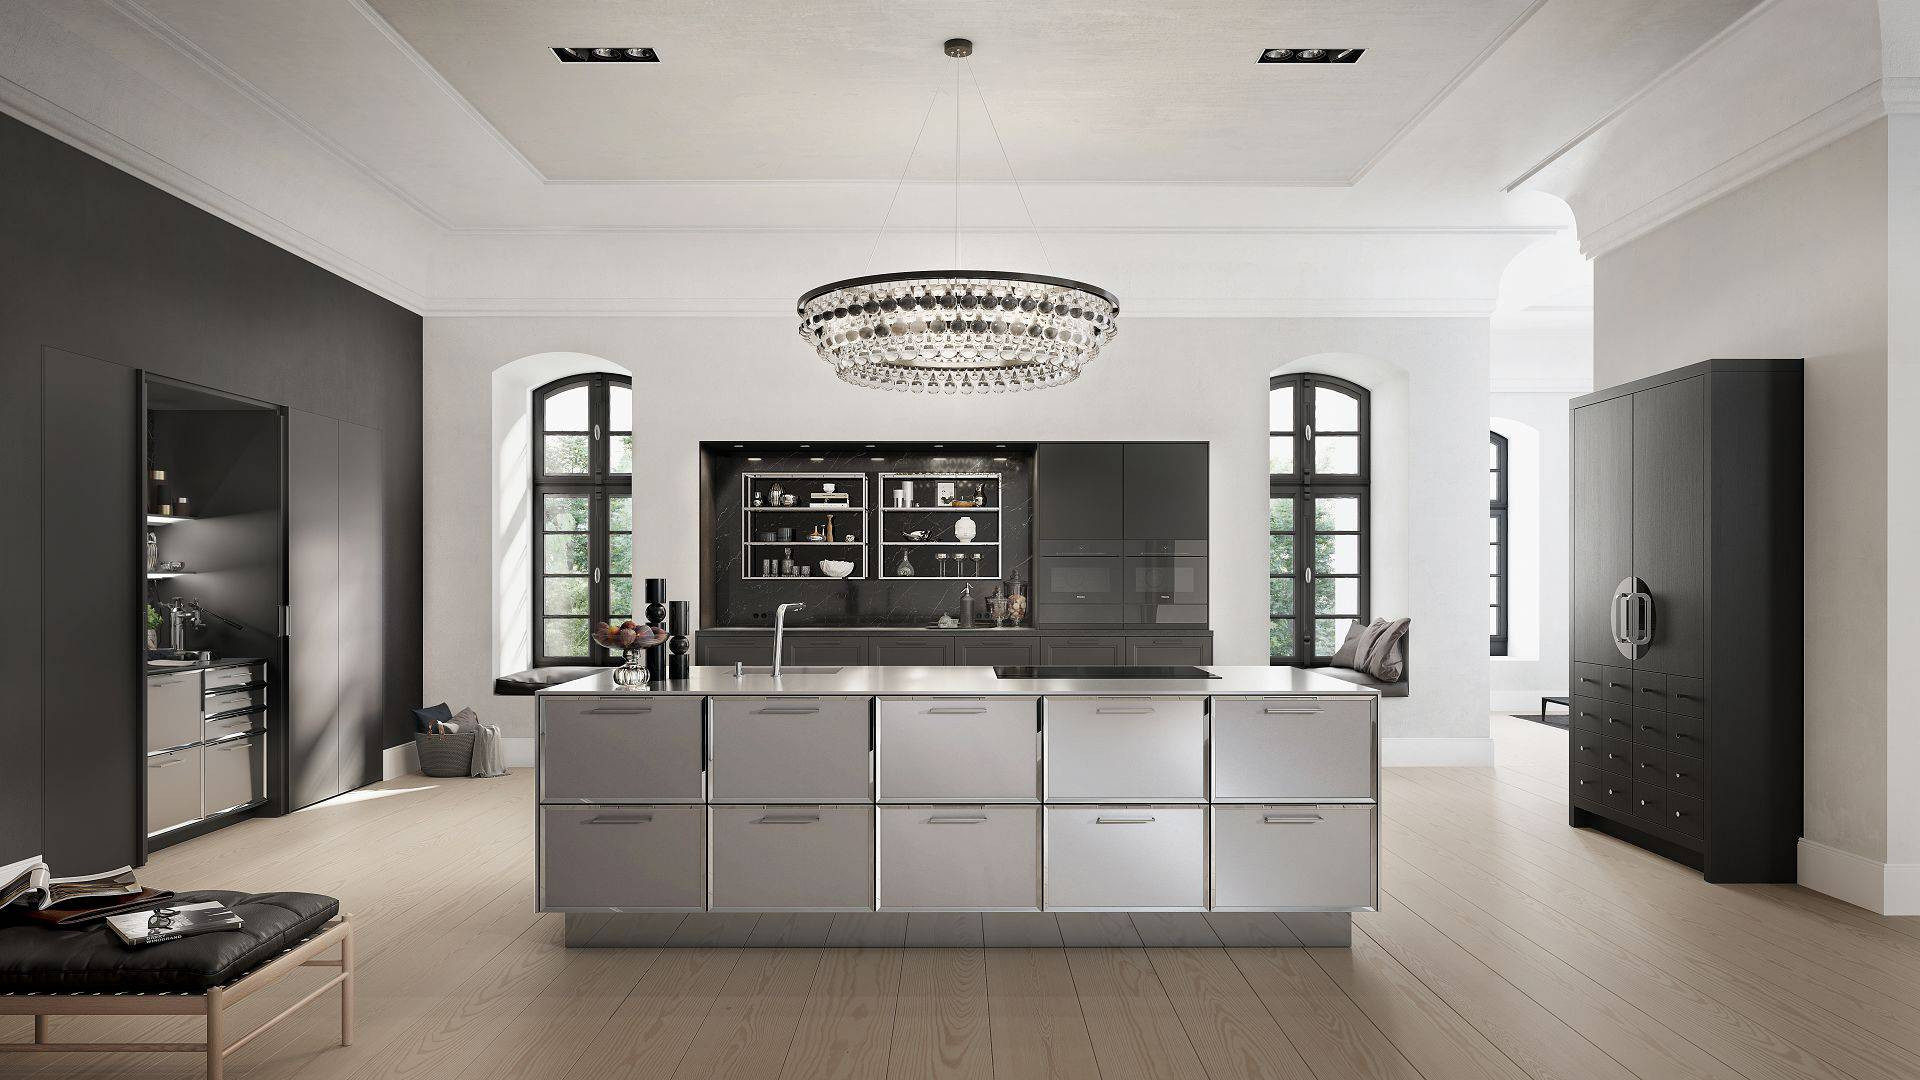 hardwood flooring contractor fairfield county ct of siematic kitchen interior design of timeless elegance with siematic classic beauxarts se kitchen in black matte oak with island and chinese wedding cabinet